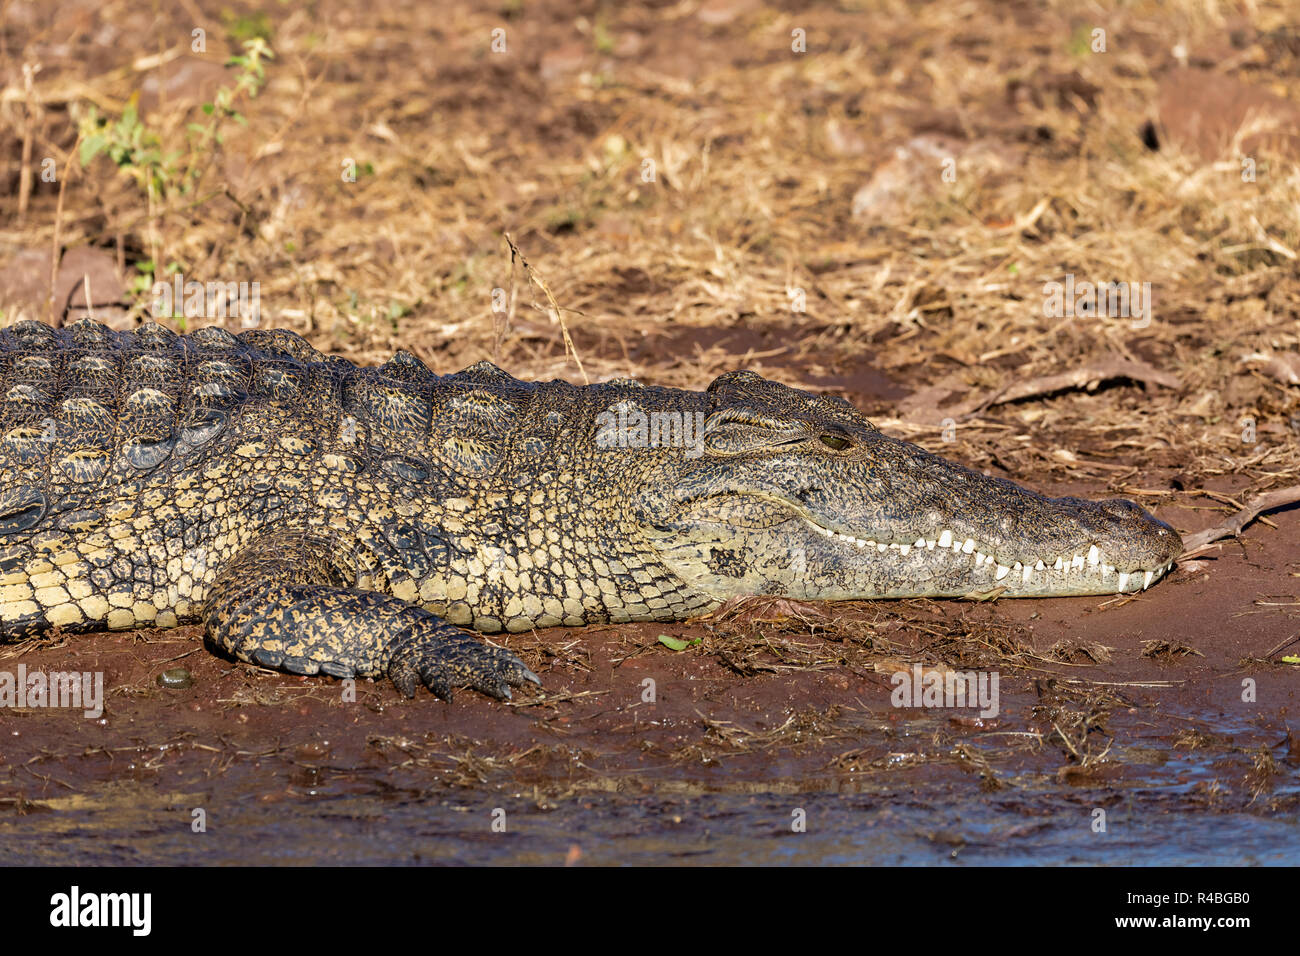 resting nile crocodile on river bank, opened mouth showing teeth in Chobe river, Botswana safari wildlife - Stock Image